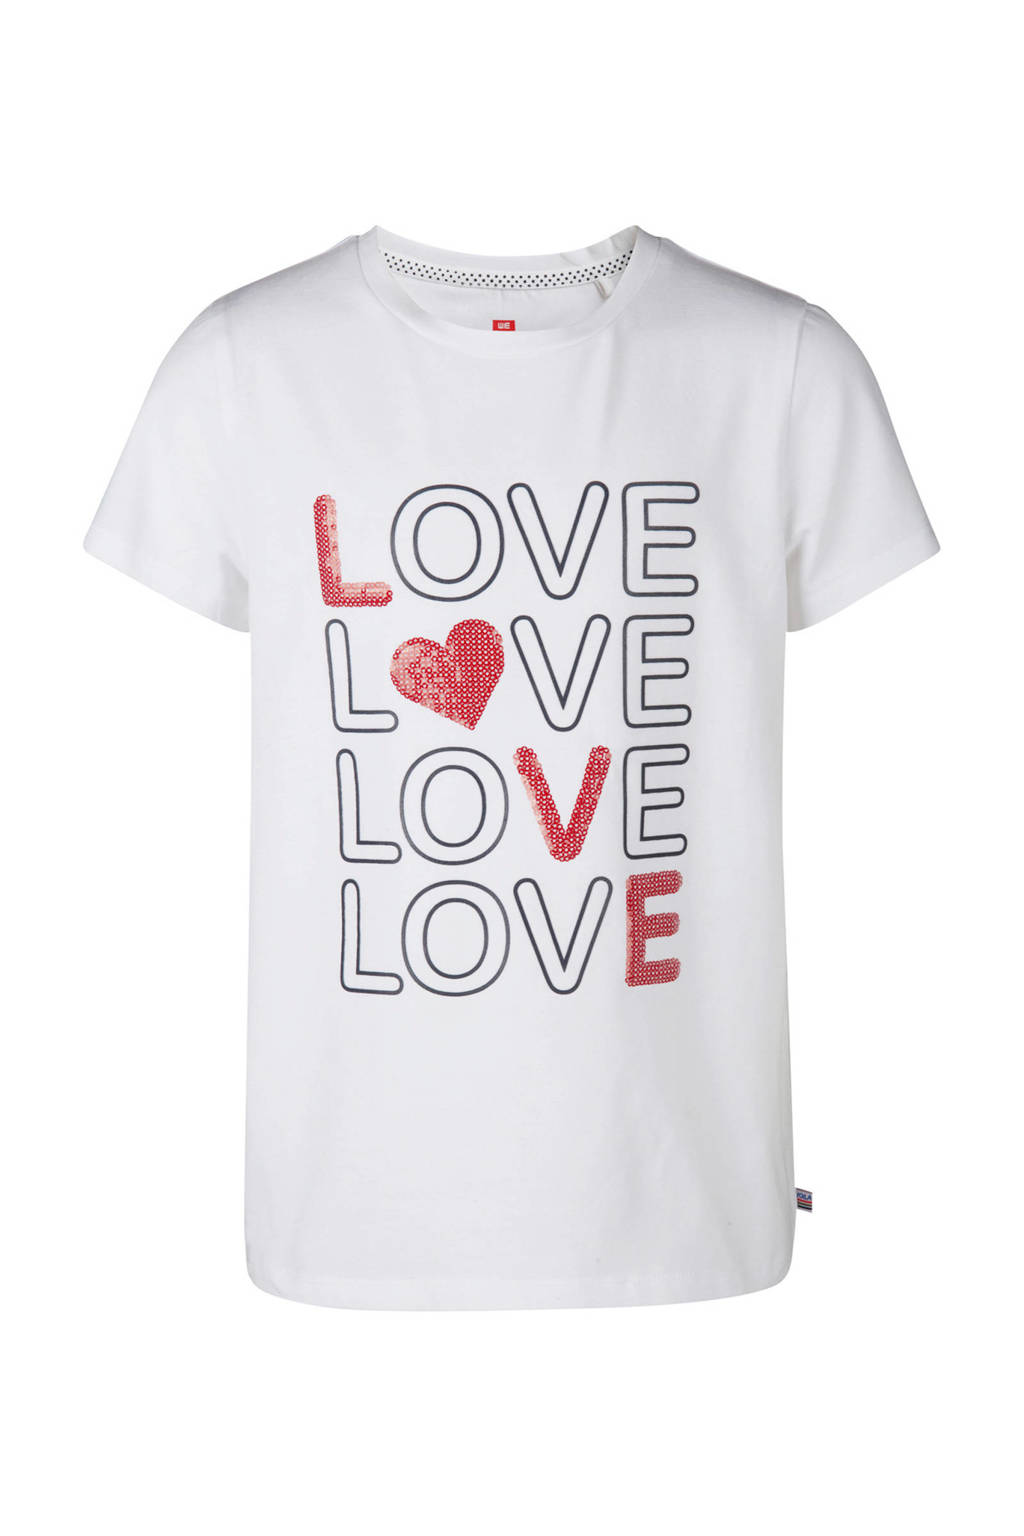 WE Fashion T-shirt met tekst en pailletten wit, Wit